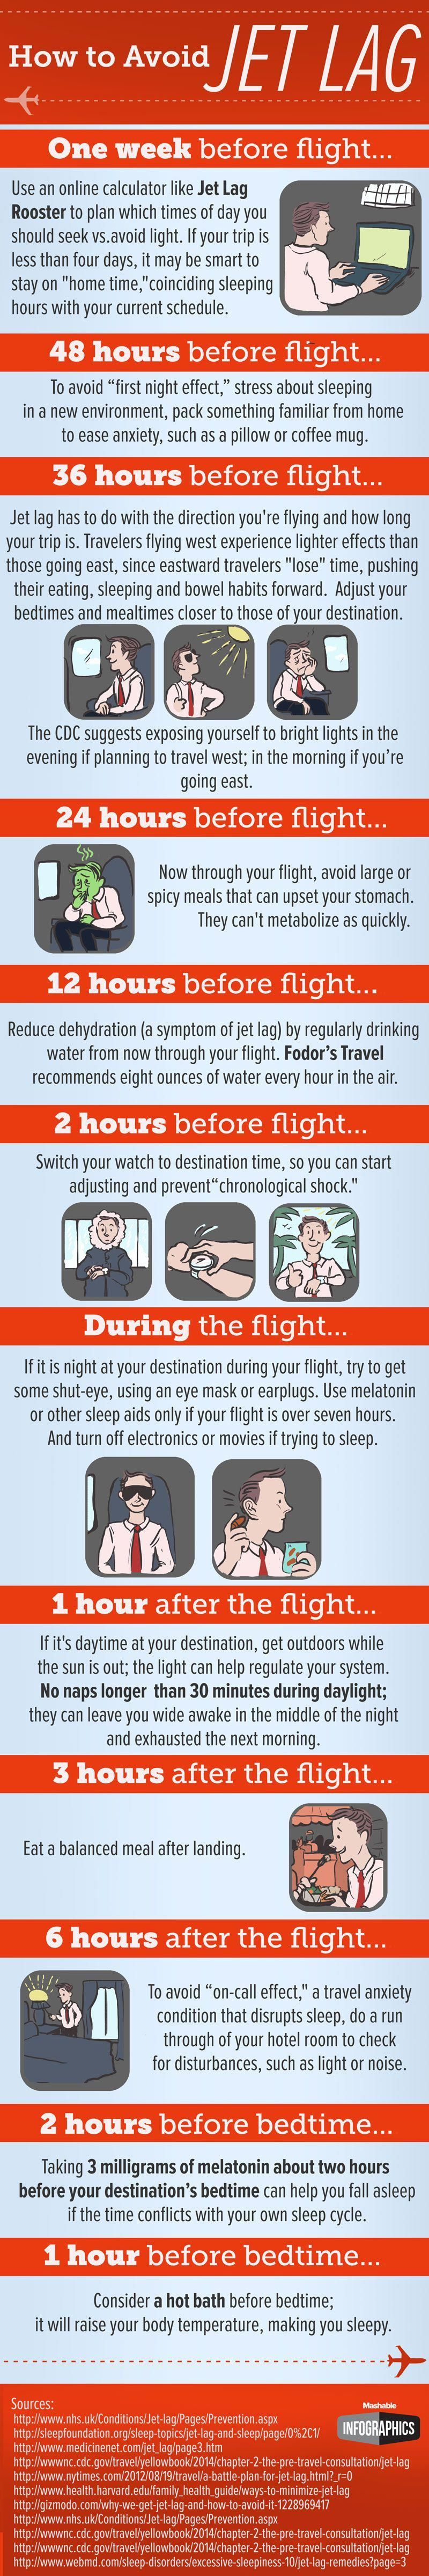 How To Defeat Jet Lag Travel Advice Travel Tips Travelling Tips